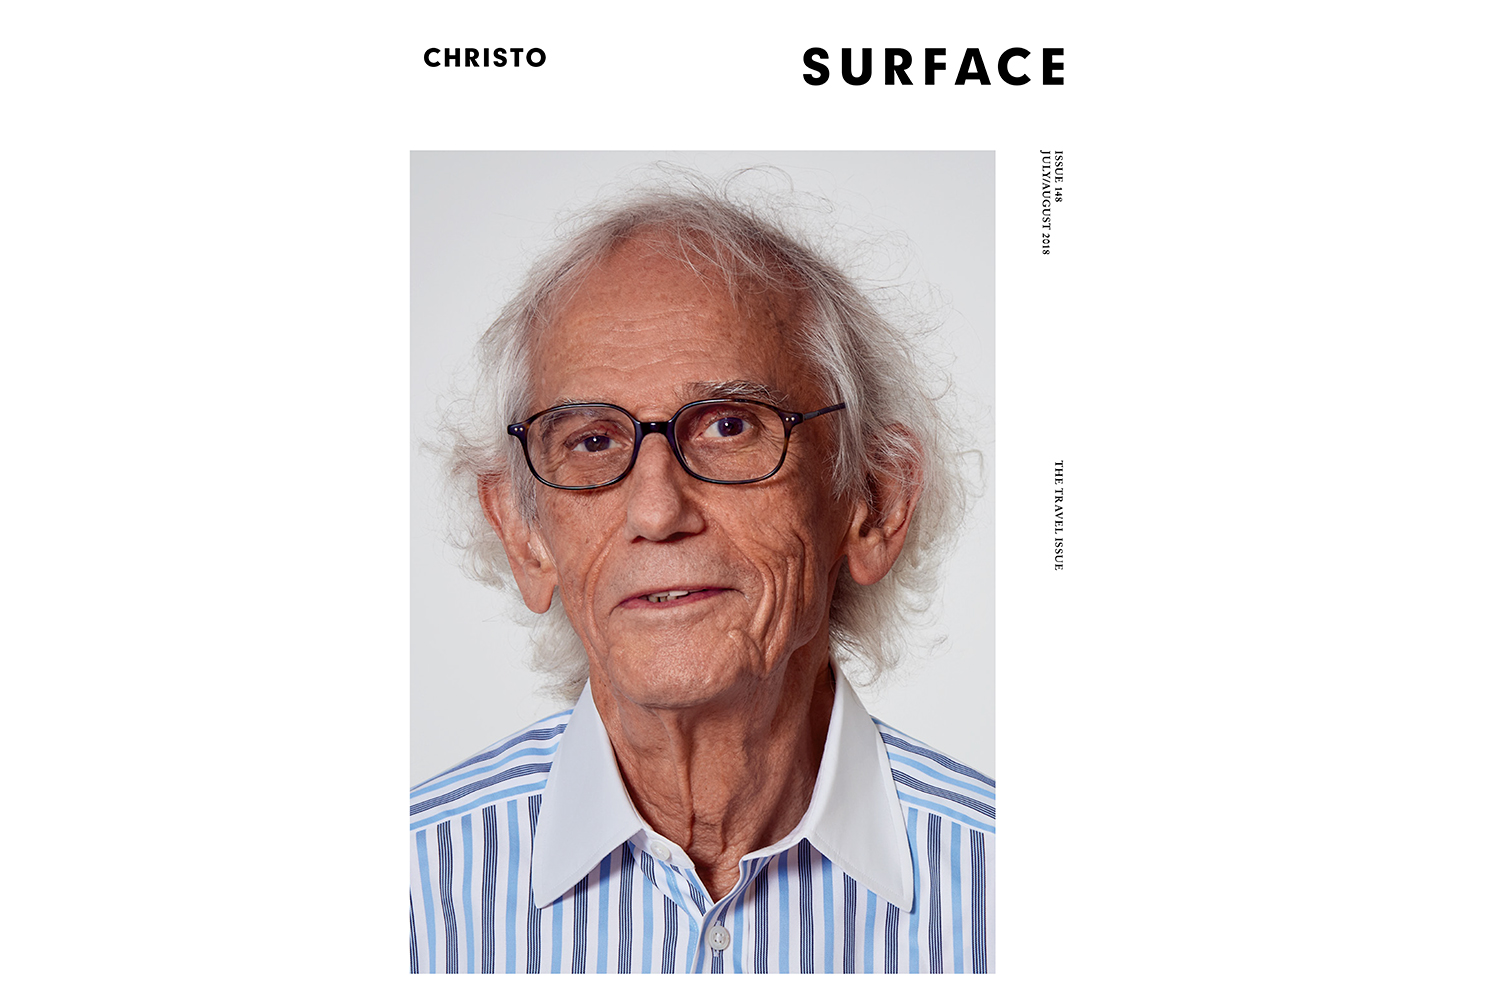 christo_surfacemagazine_©markcocksedge_002.JPG